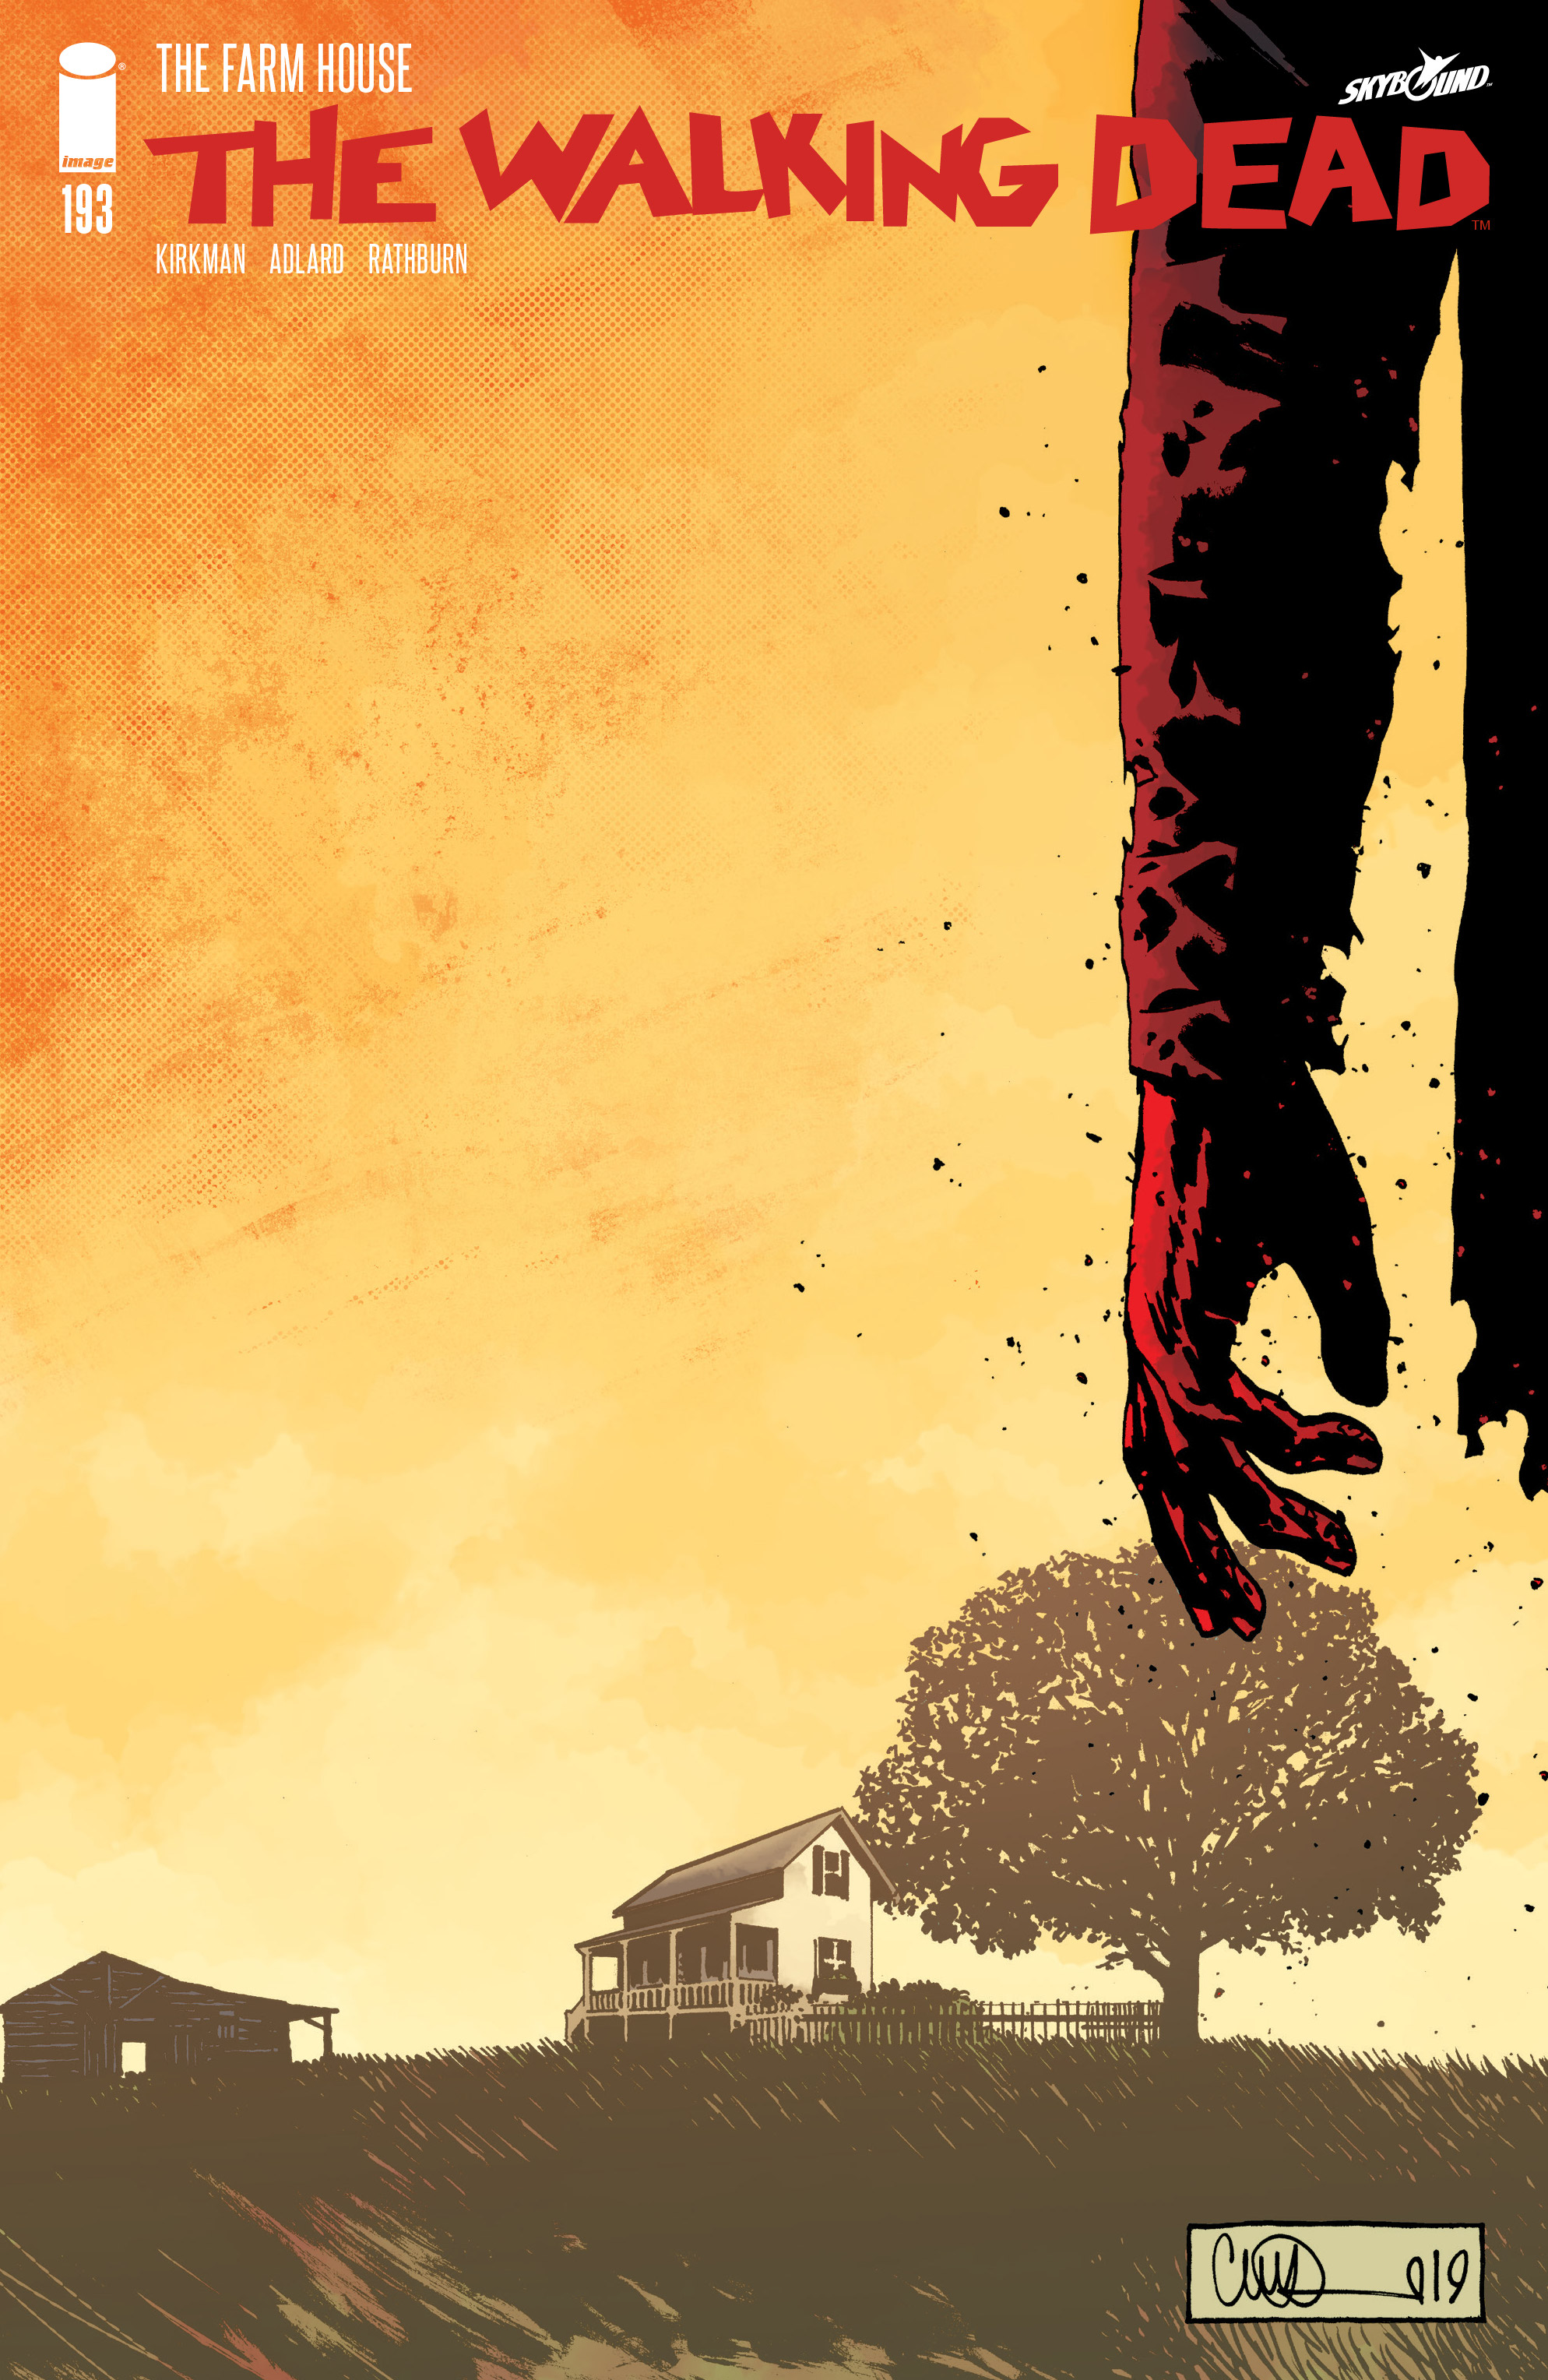 the cover of The Walking Dead #193, the final issue of the series: a zombie hand with a farmhouse in the background